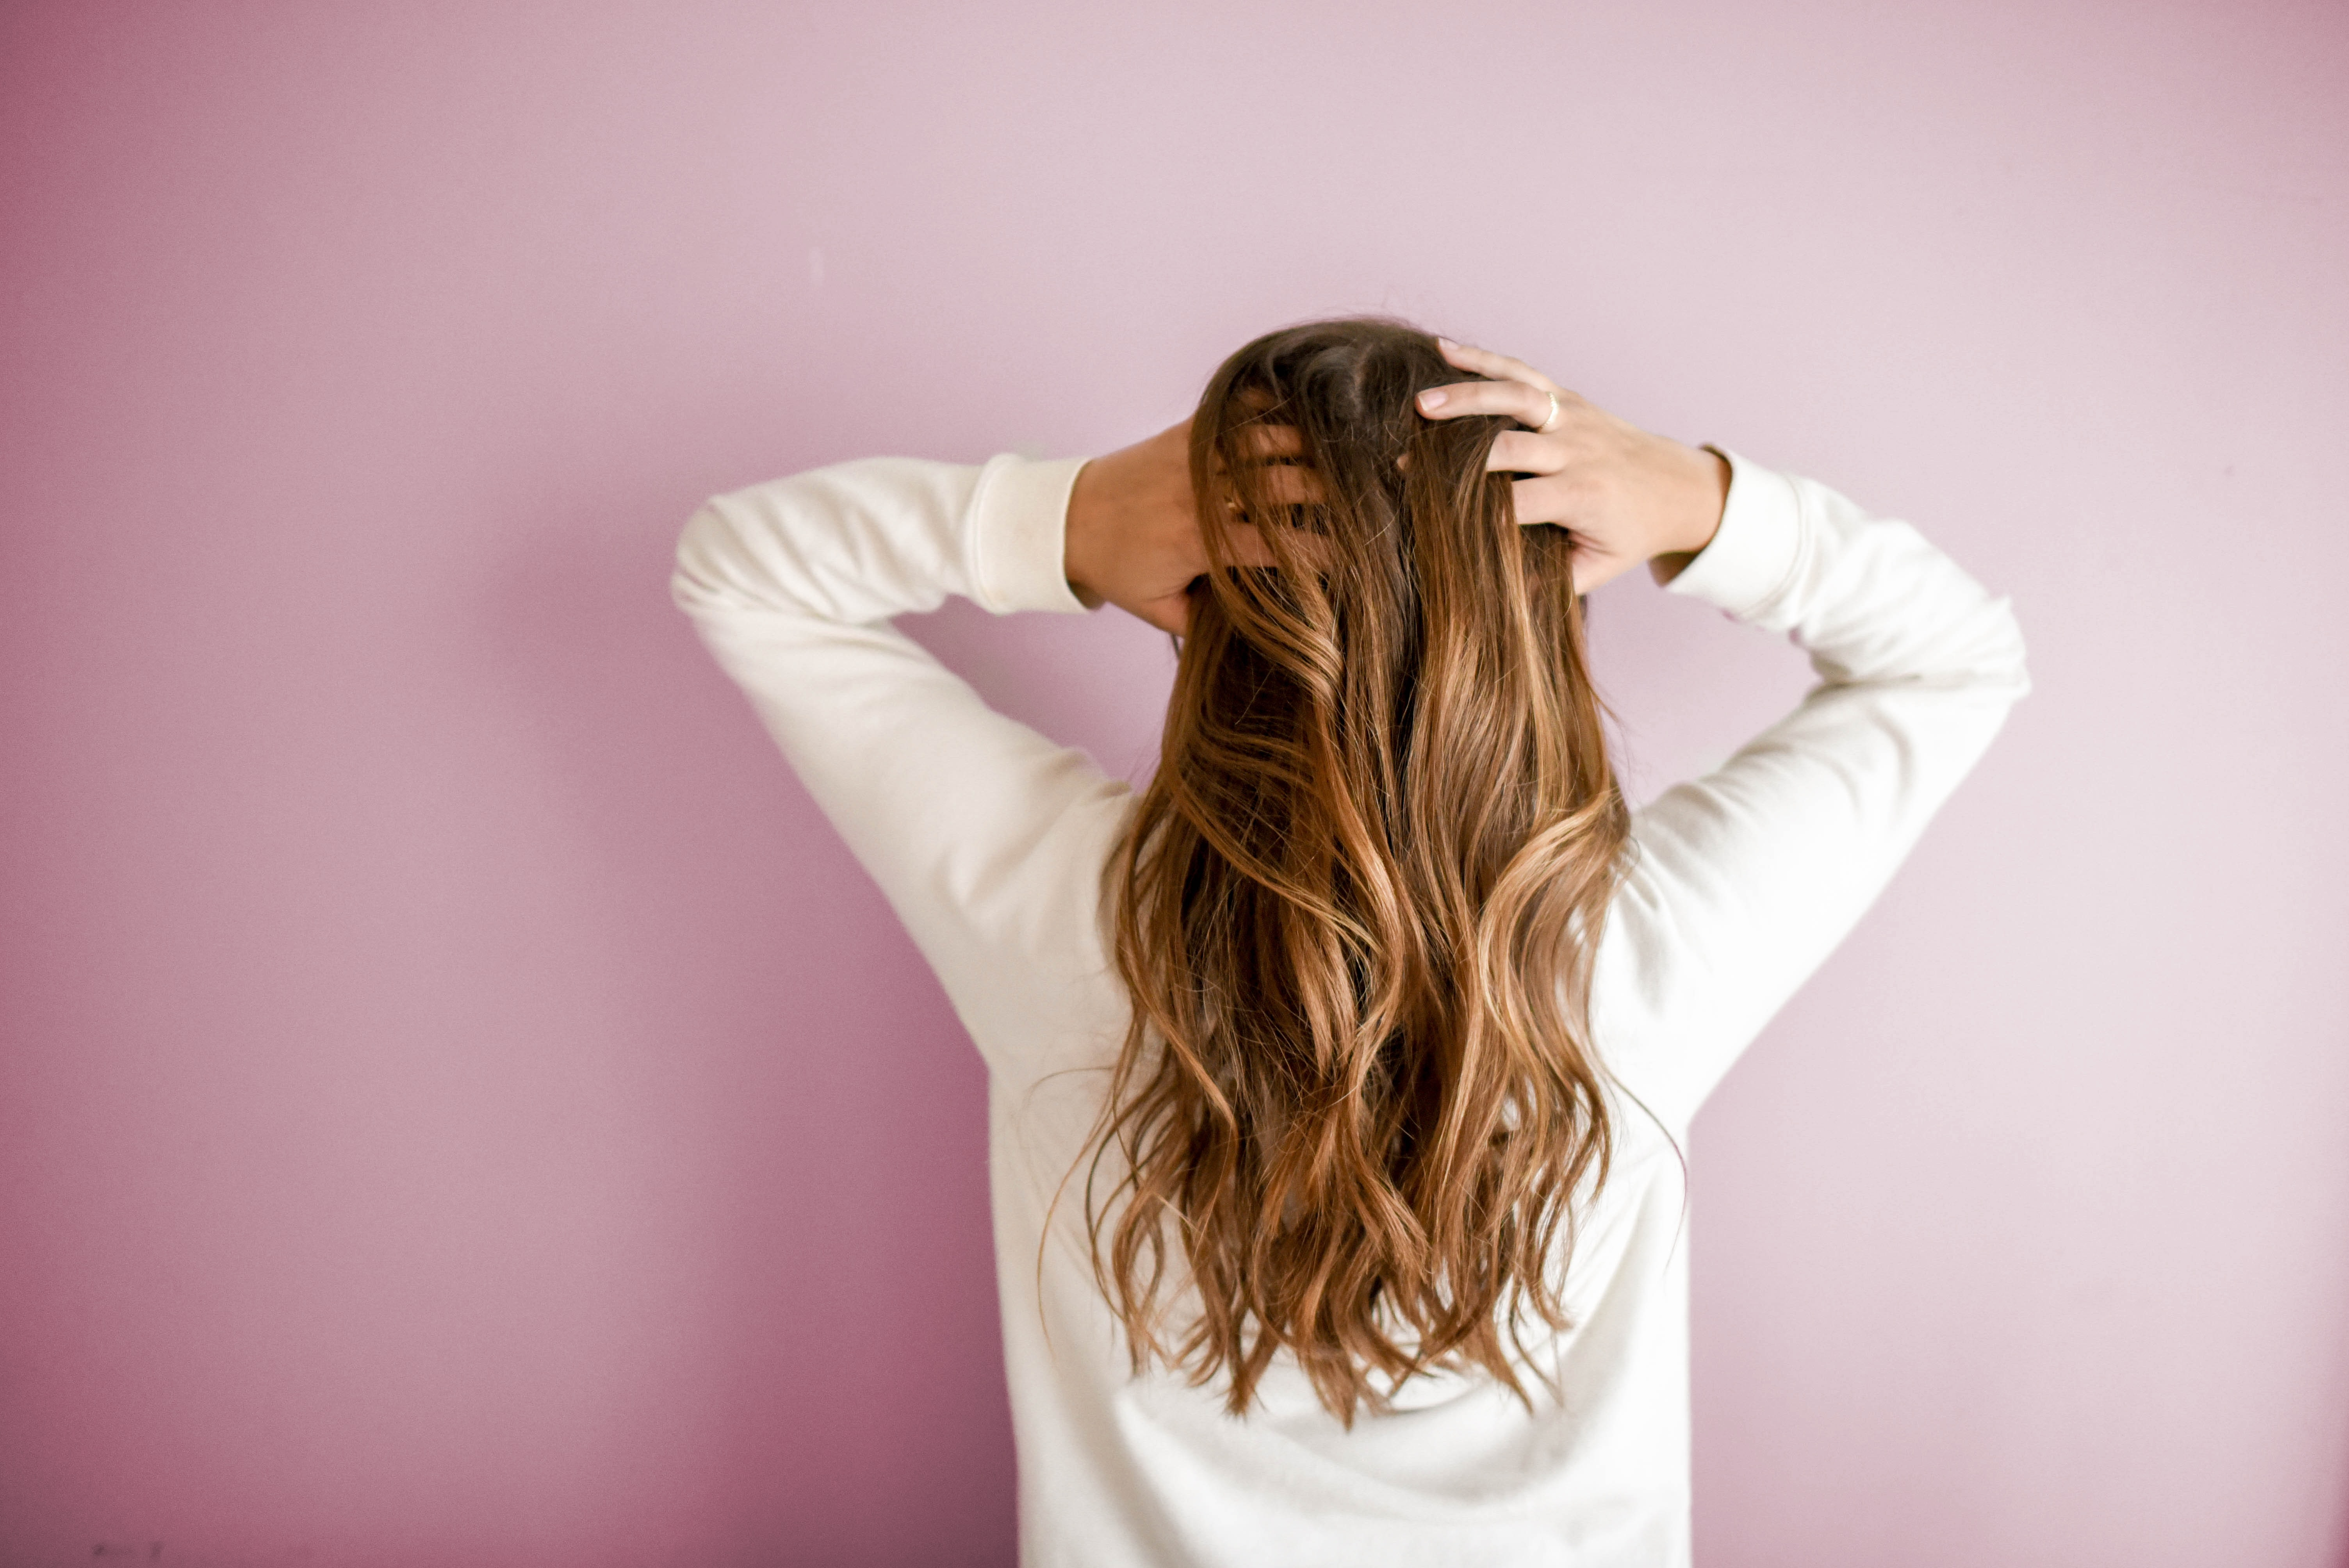 Woman from the back, showing her hair.